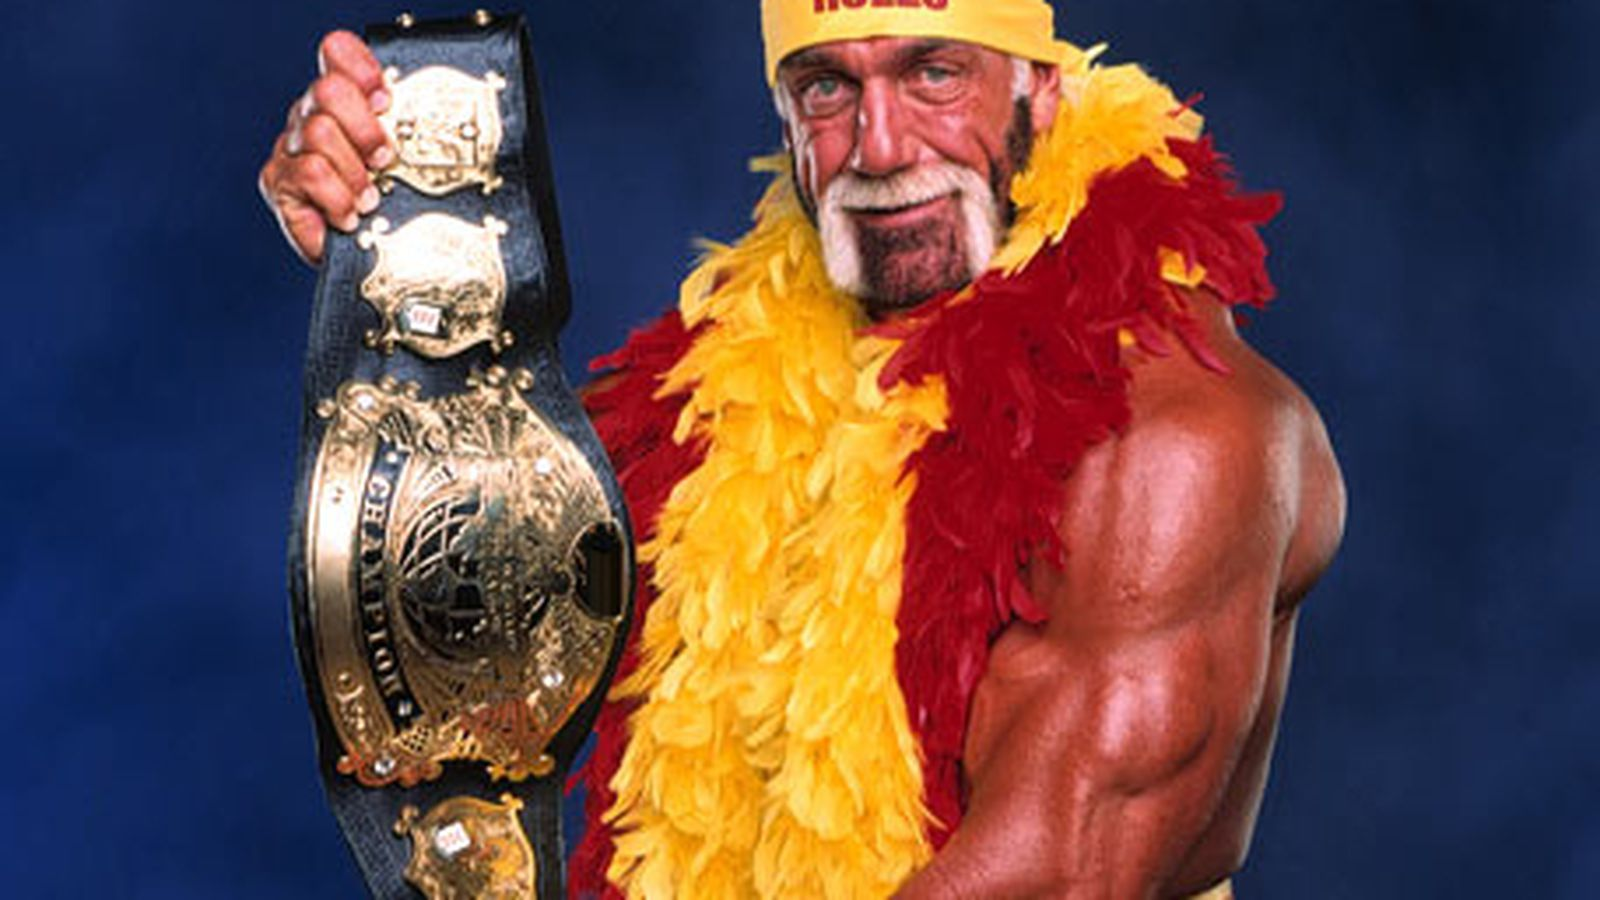 Wwe Hulk Hogan Poll Results Hulk Hogan Is The Most Popular Pro Wrestler